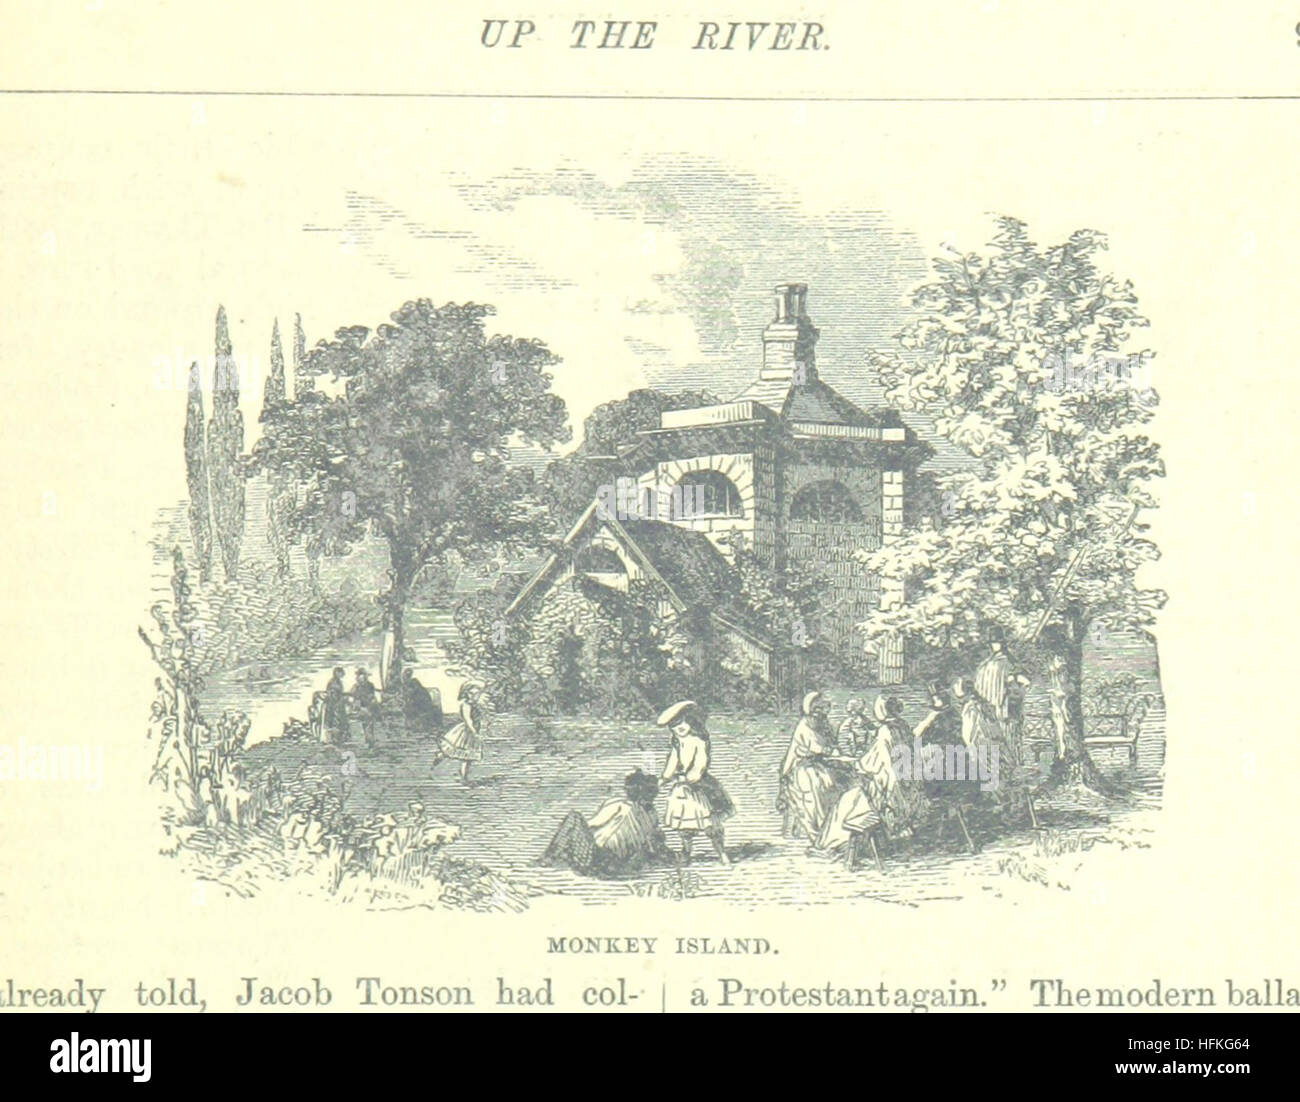 Image taken from page 129 of 'Up the River from Westminster to Windsor and Oxford; a descriptive panorama of - Stock Image